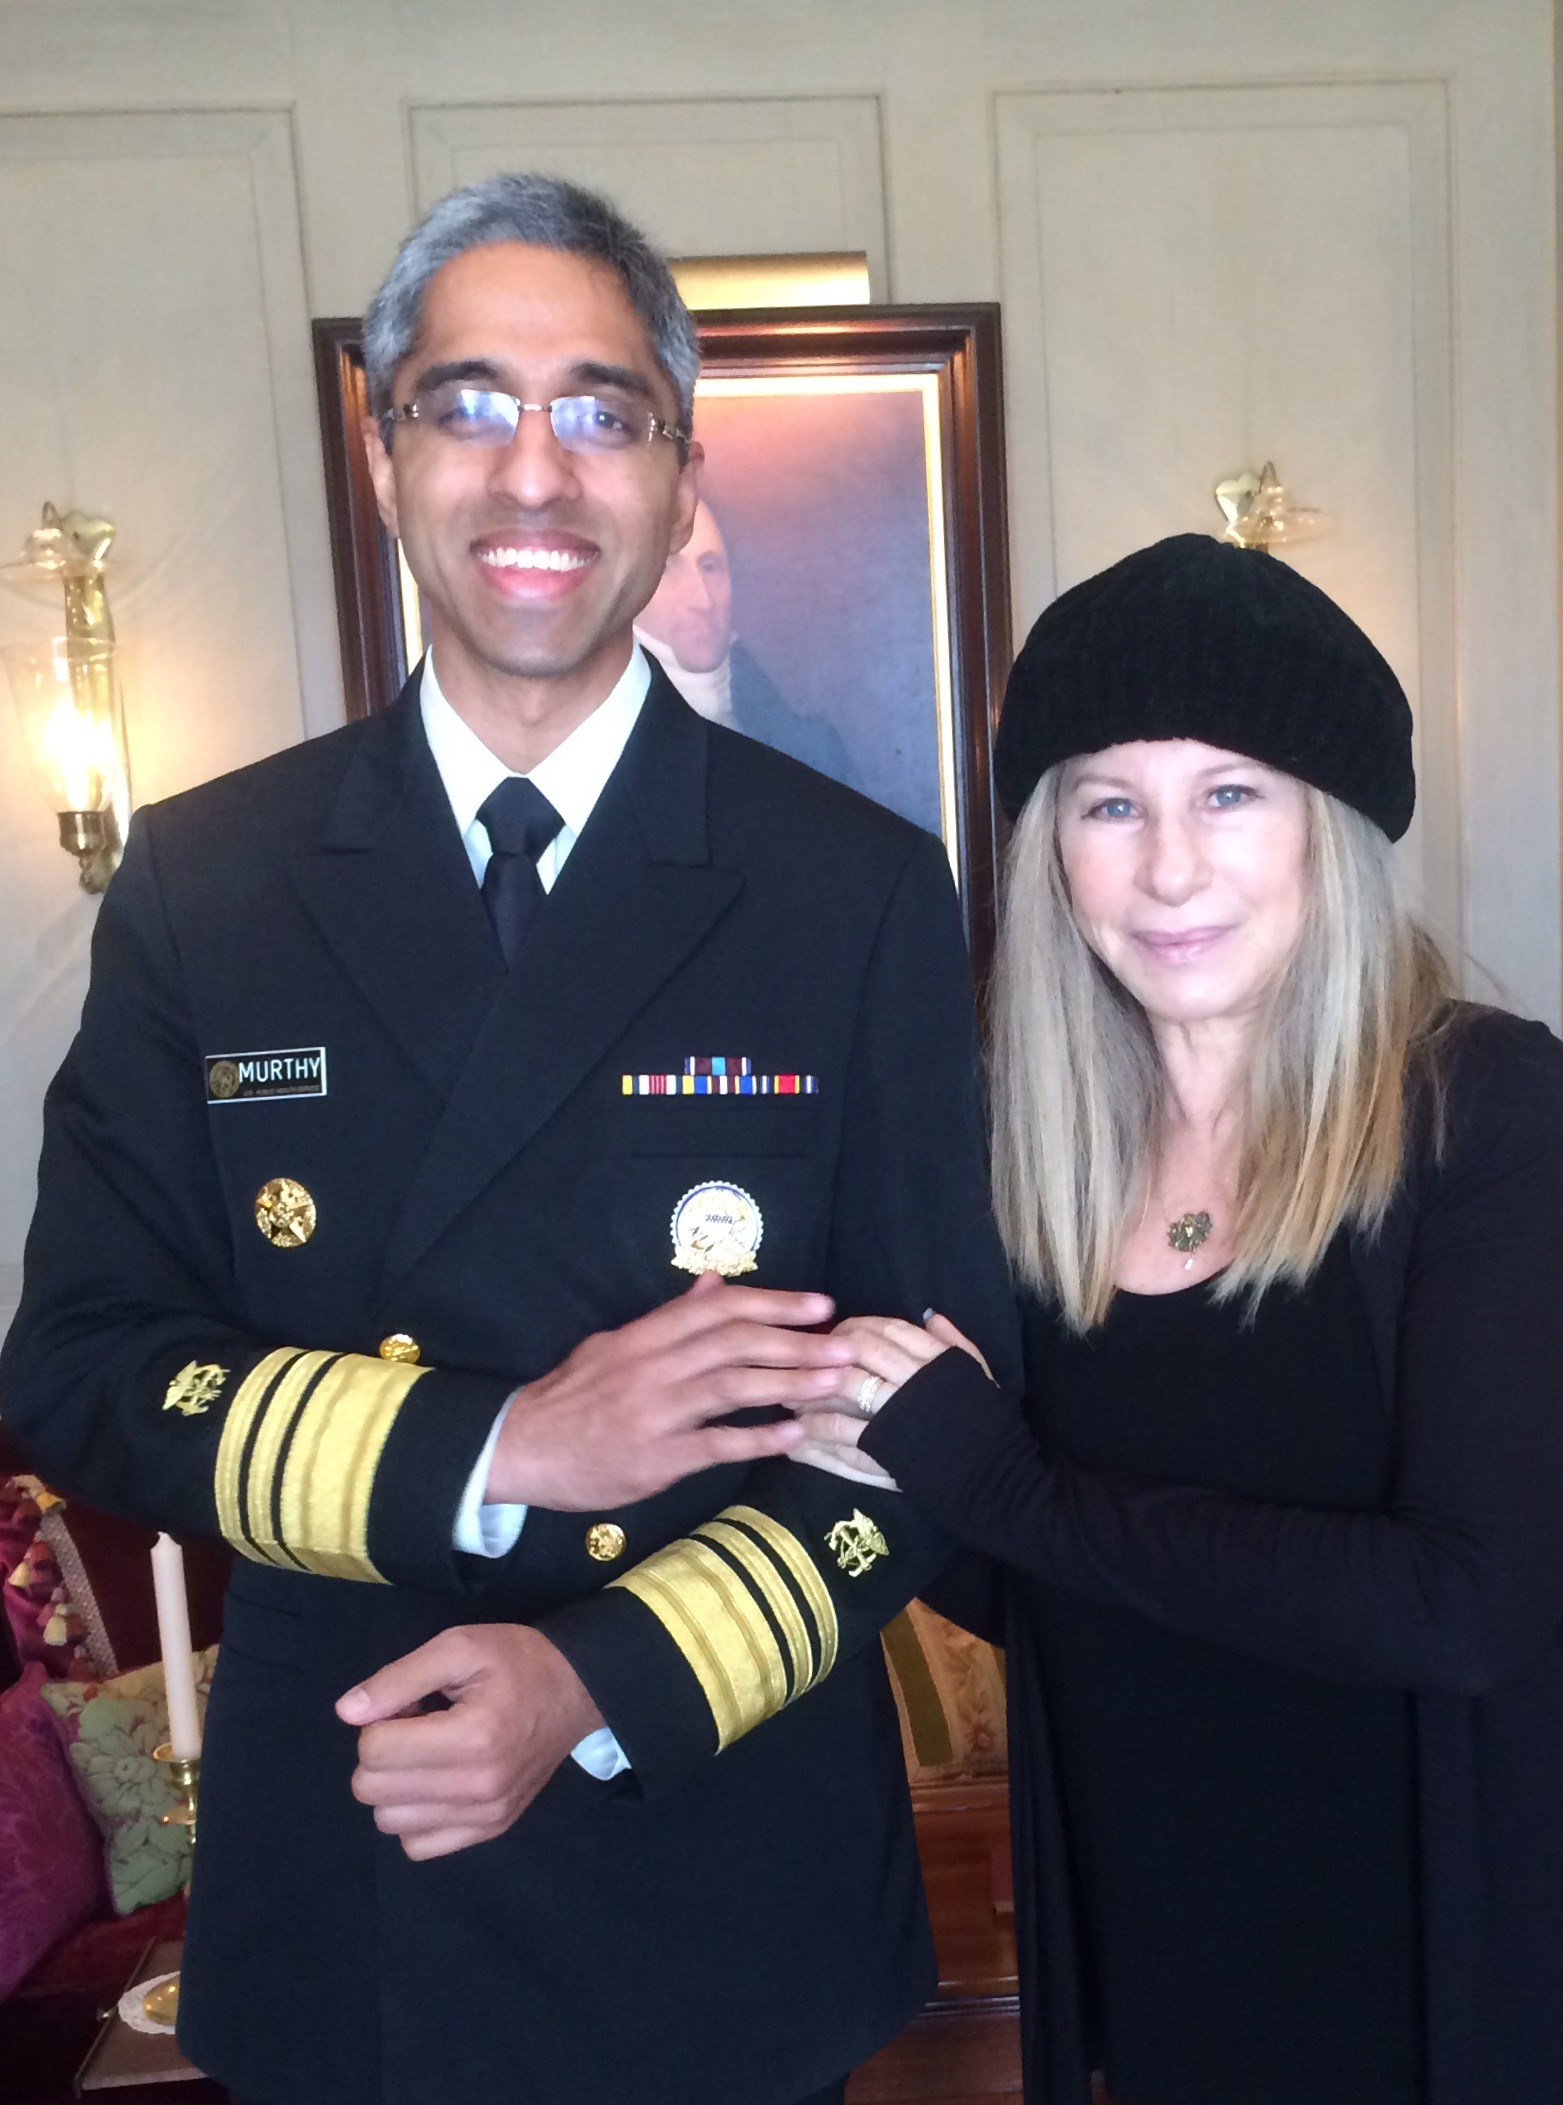 Vivek Murthy and Barbra Streisand in Los Angeles in January 2016.